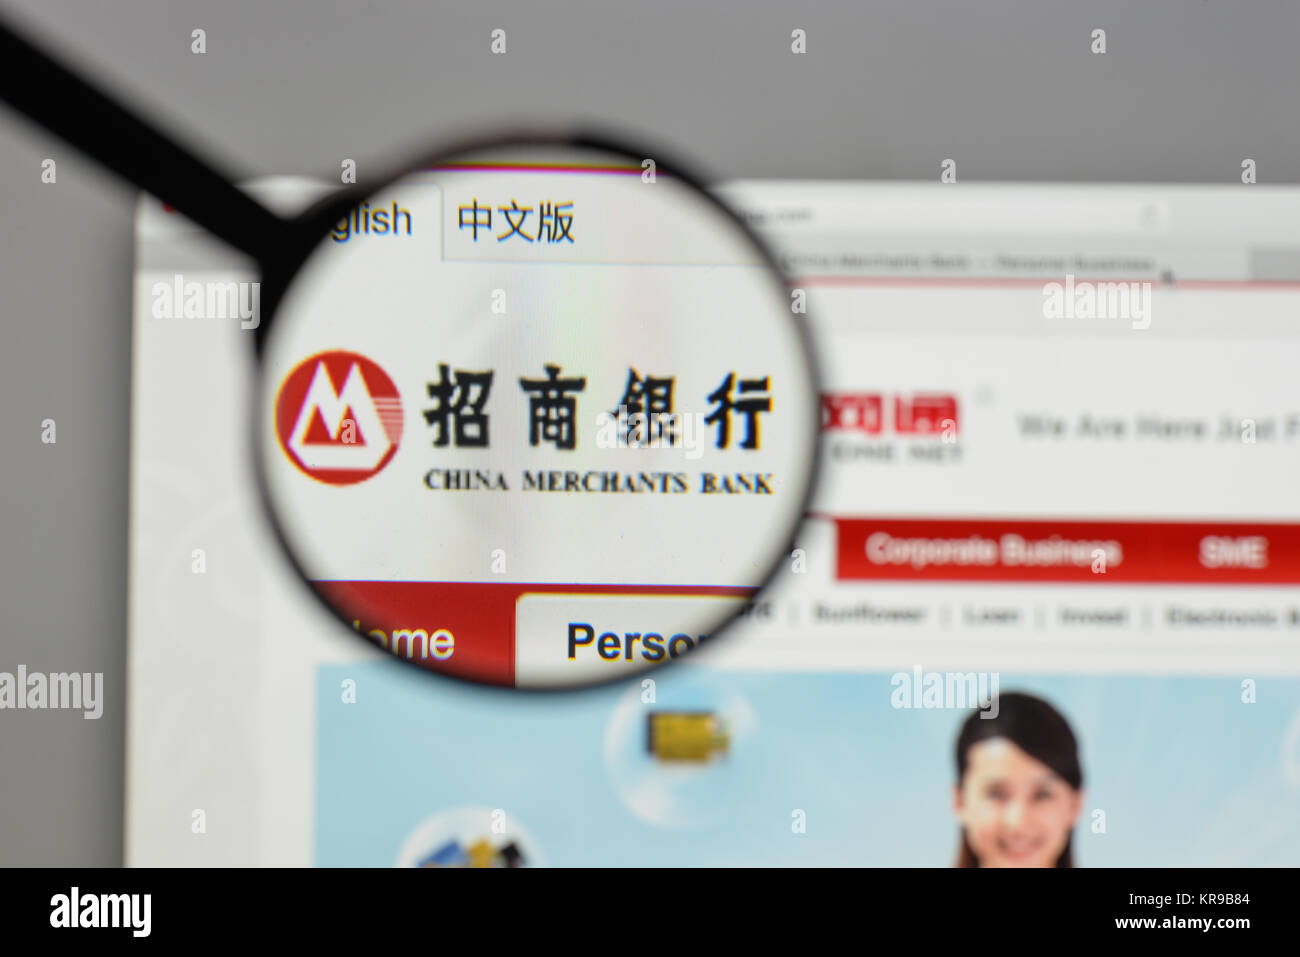 Milan, Italy - August 10, 2017: China Merchants Bank logo on the website homepage. - Stock Image